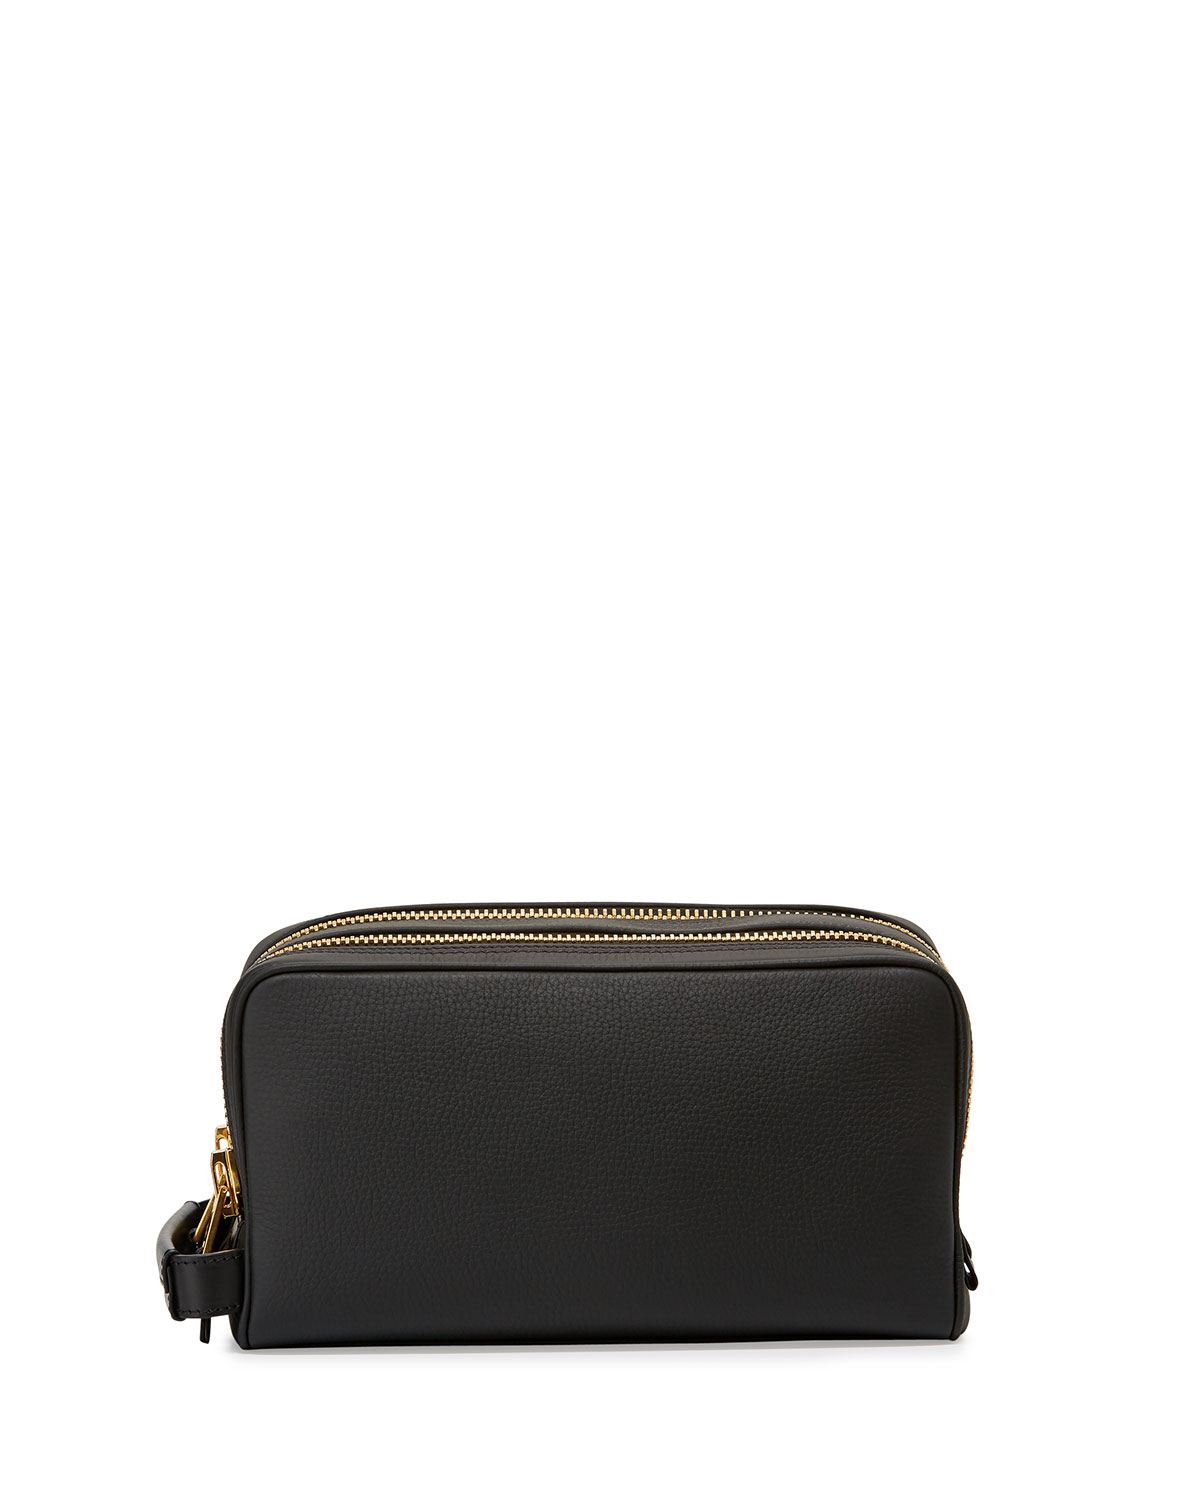 b85ccbfd5412 TOM FORD Double-Zip Leather Toiletry Case